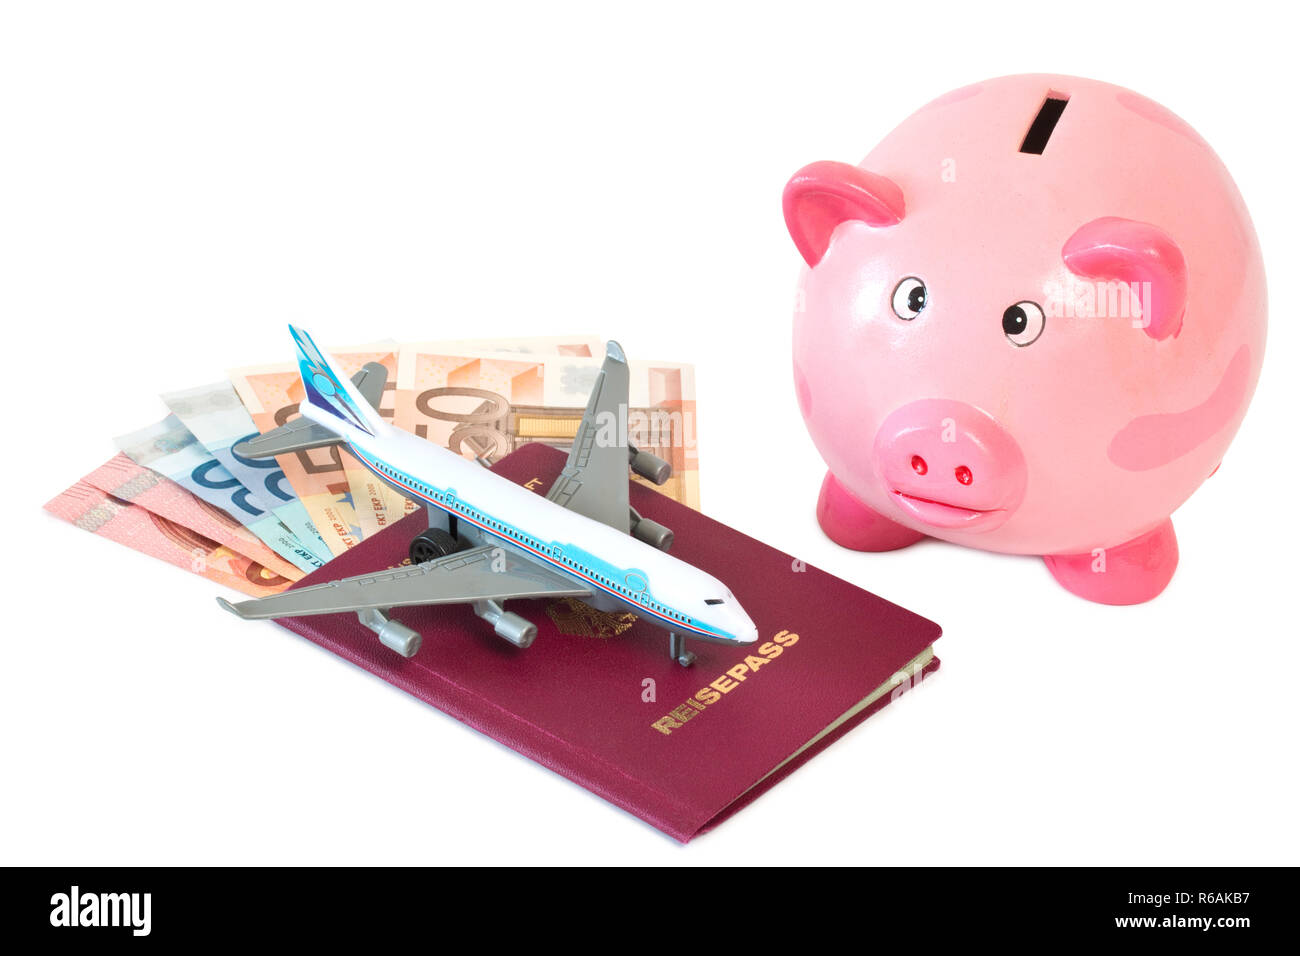 Passport With Toy Plane And Piggy Bank - Stock Image